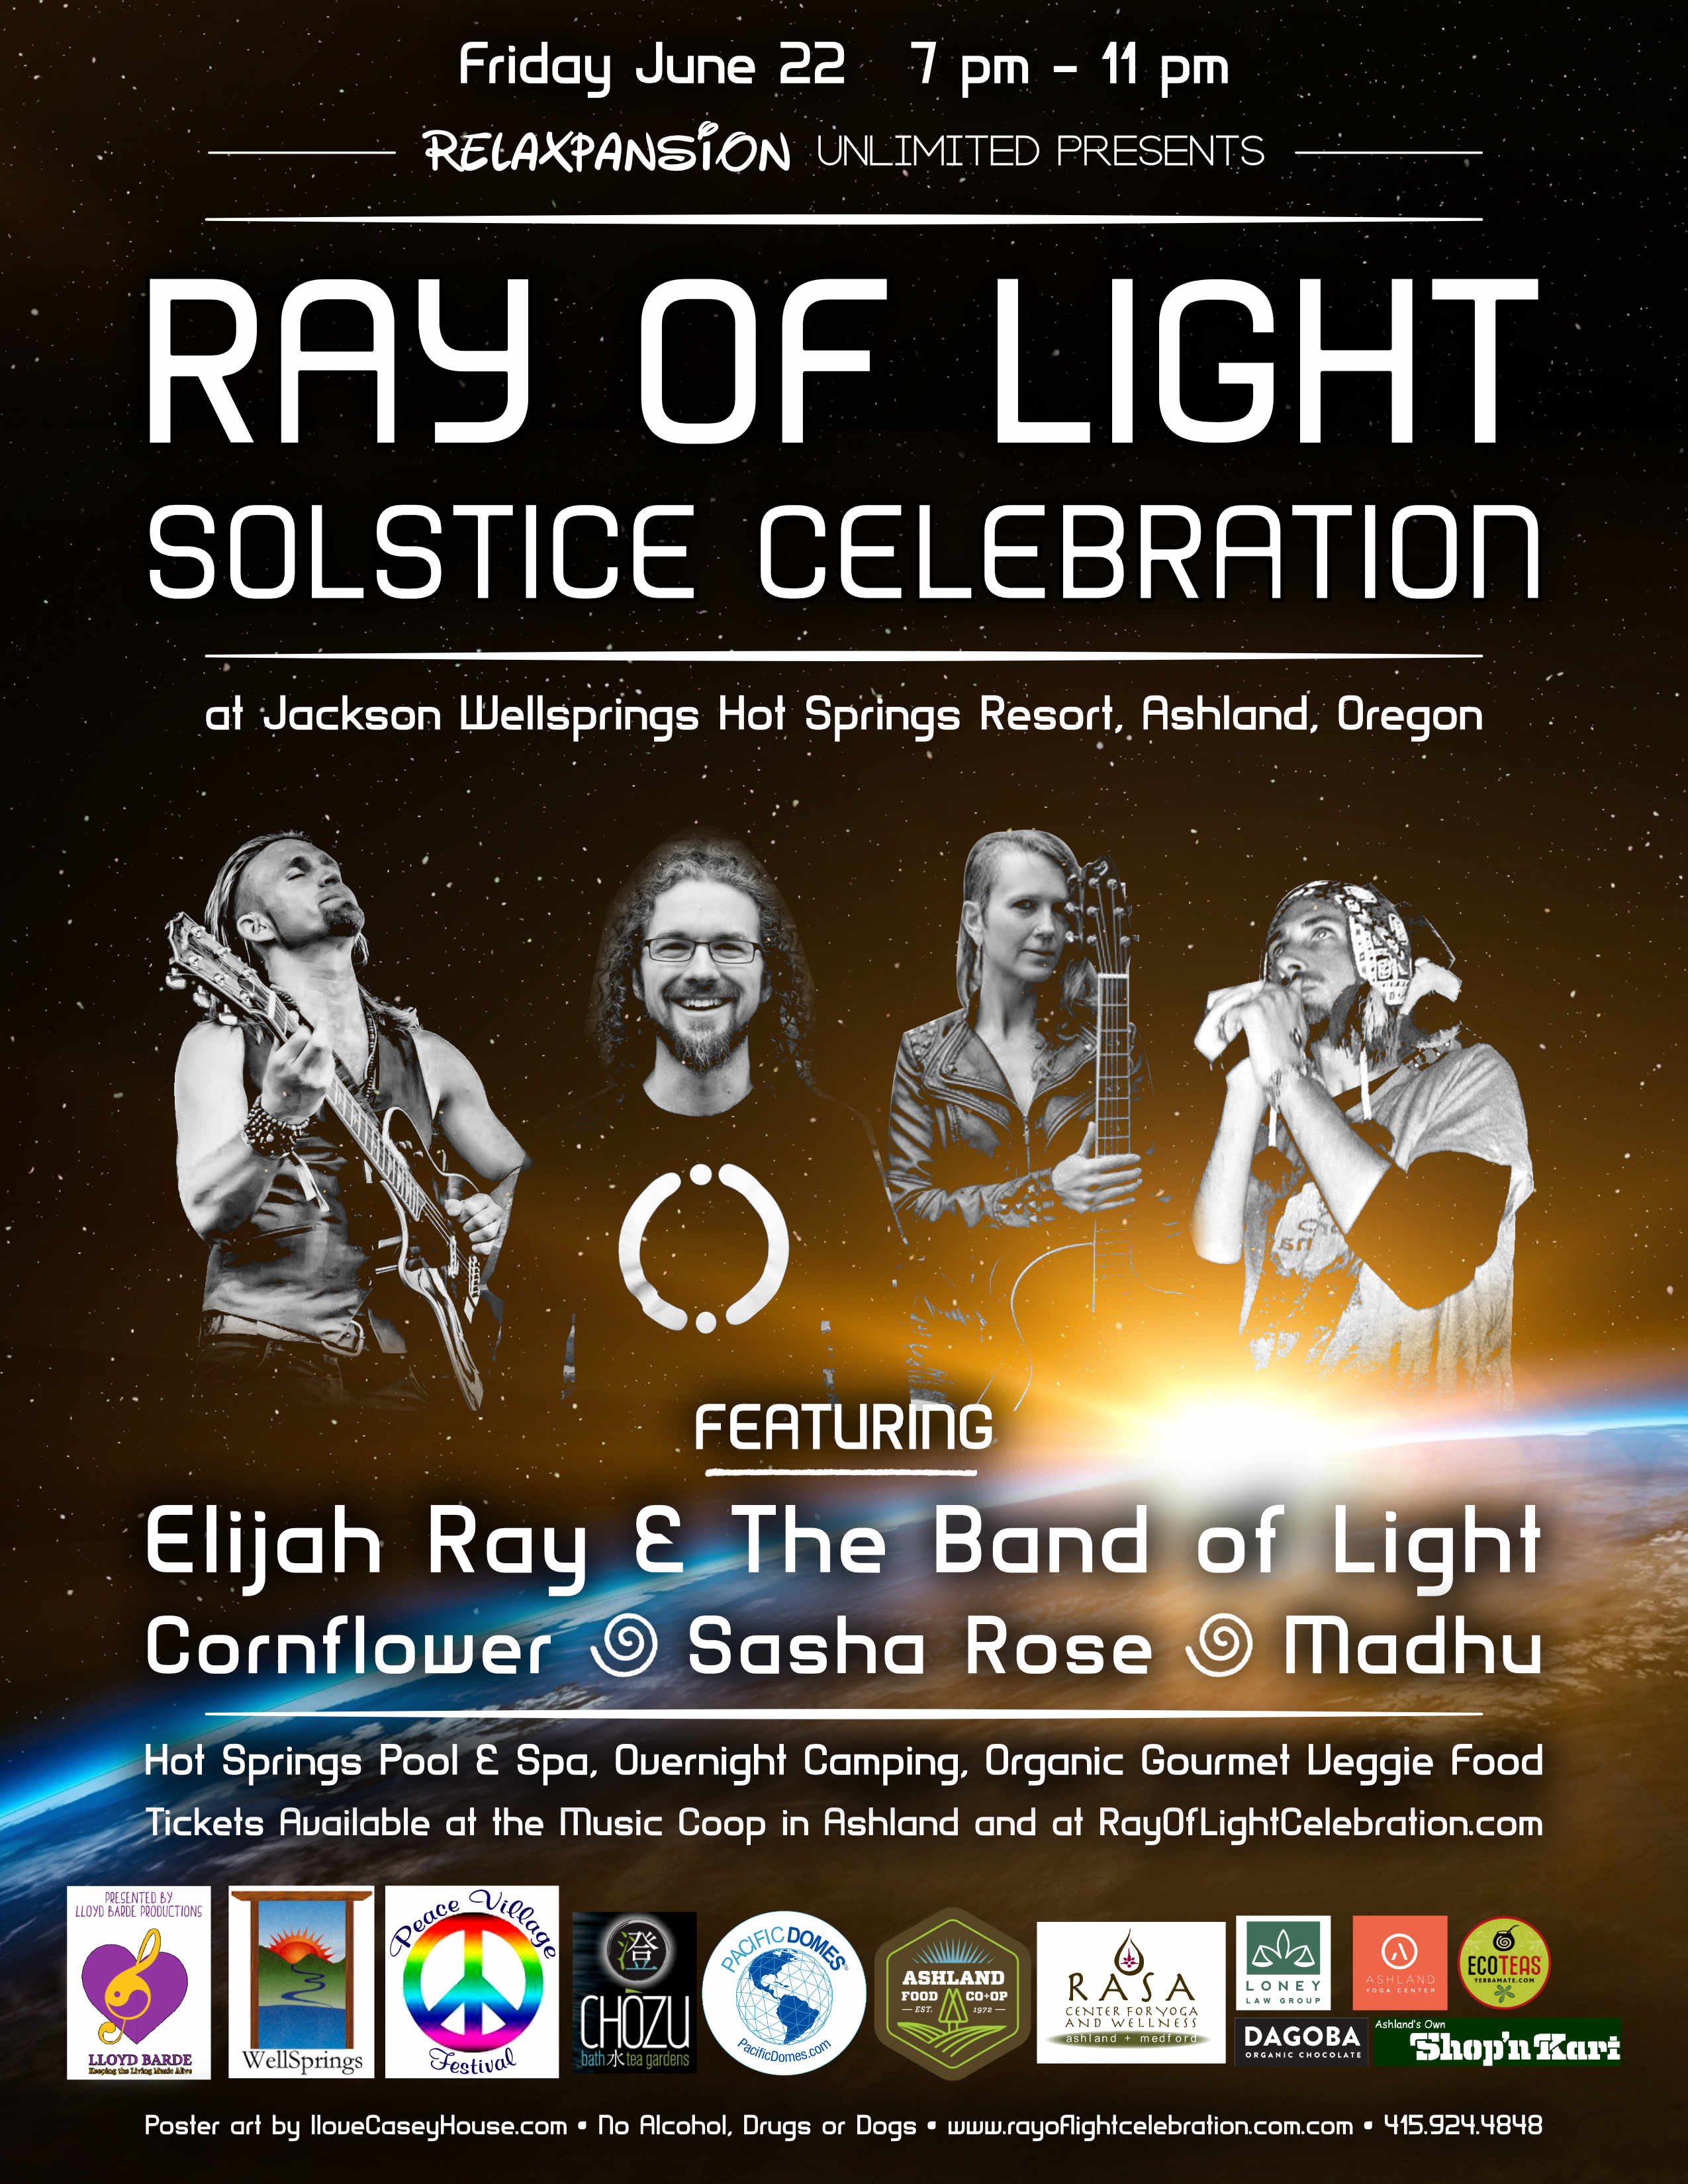 Tickets for Ray of Light Solstice Celebration: Elijah Ray, Sasha Rose, Cornflower, Madhu in Ashland from BrightStar Live Events